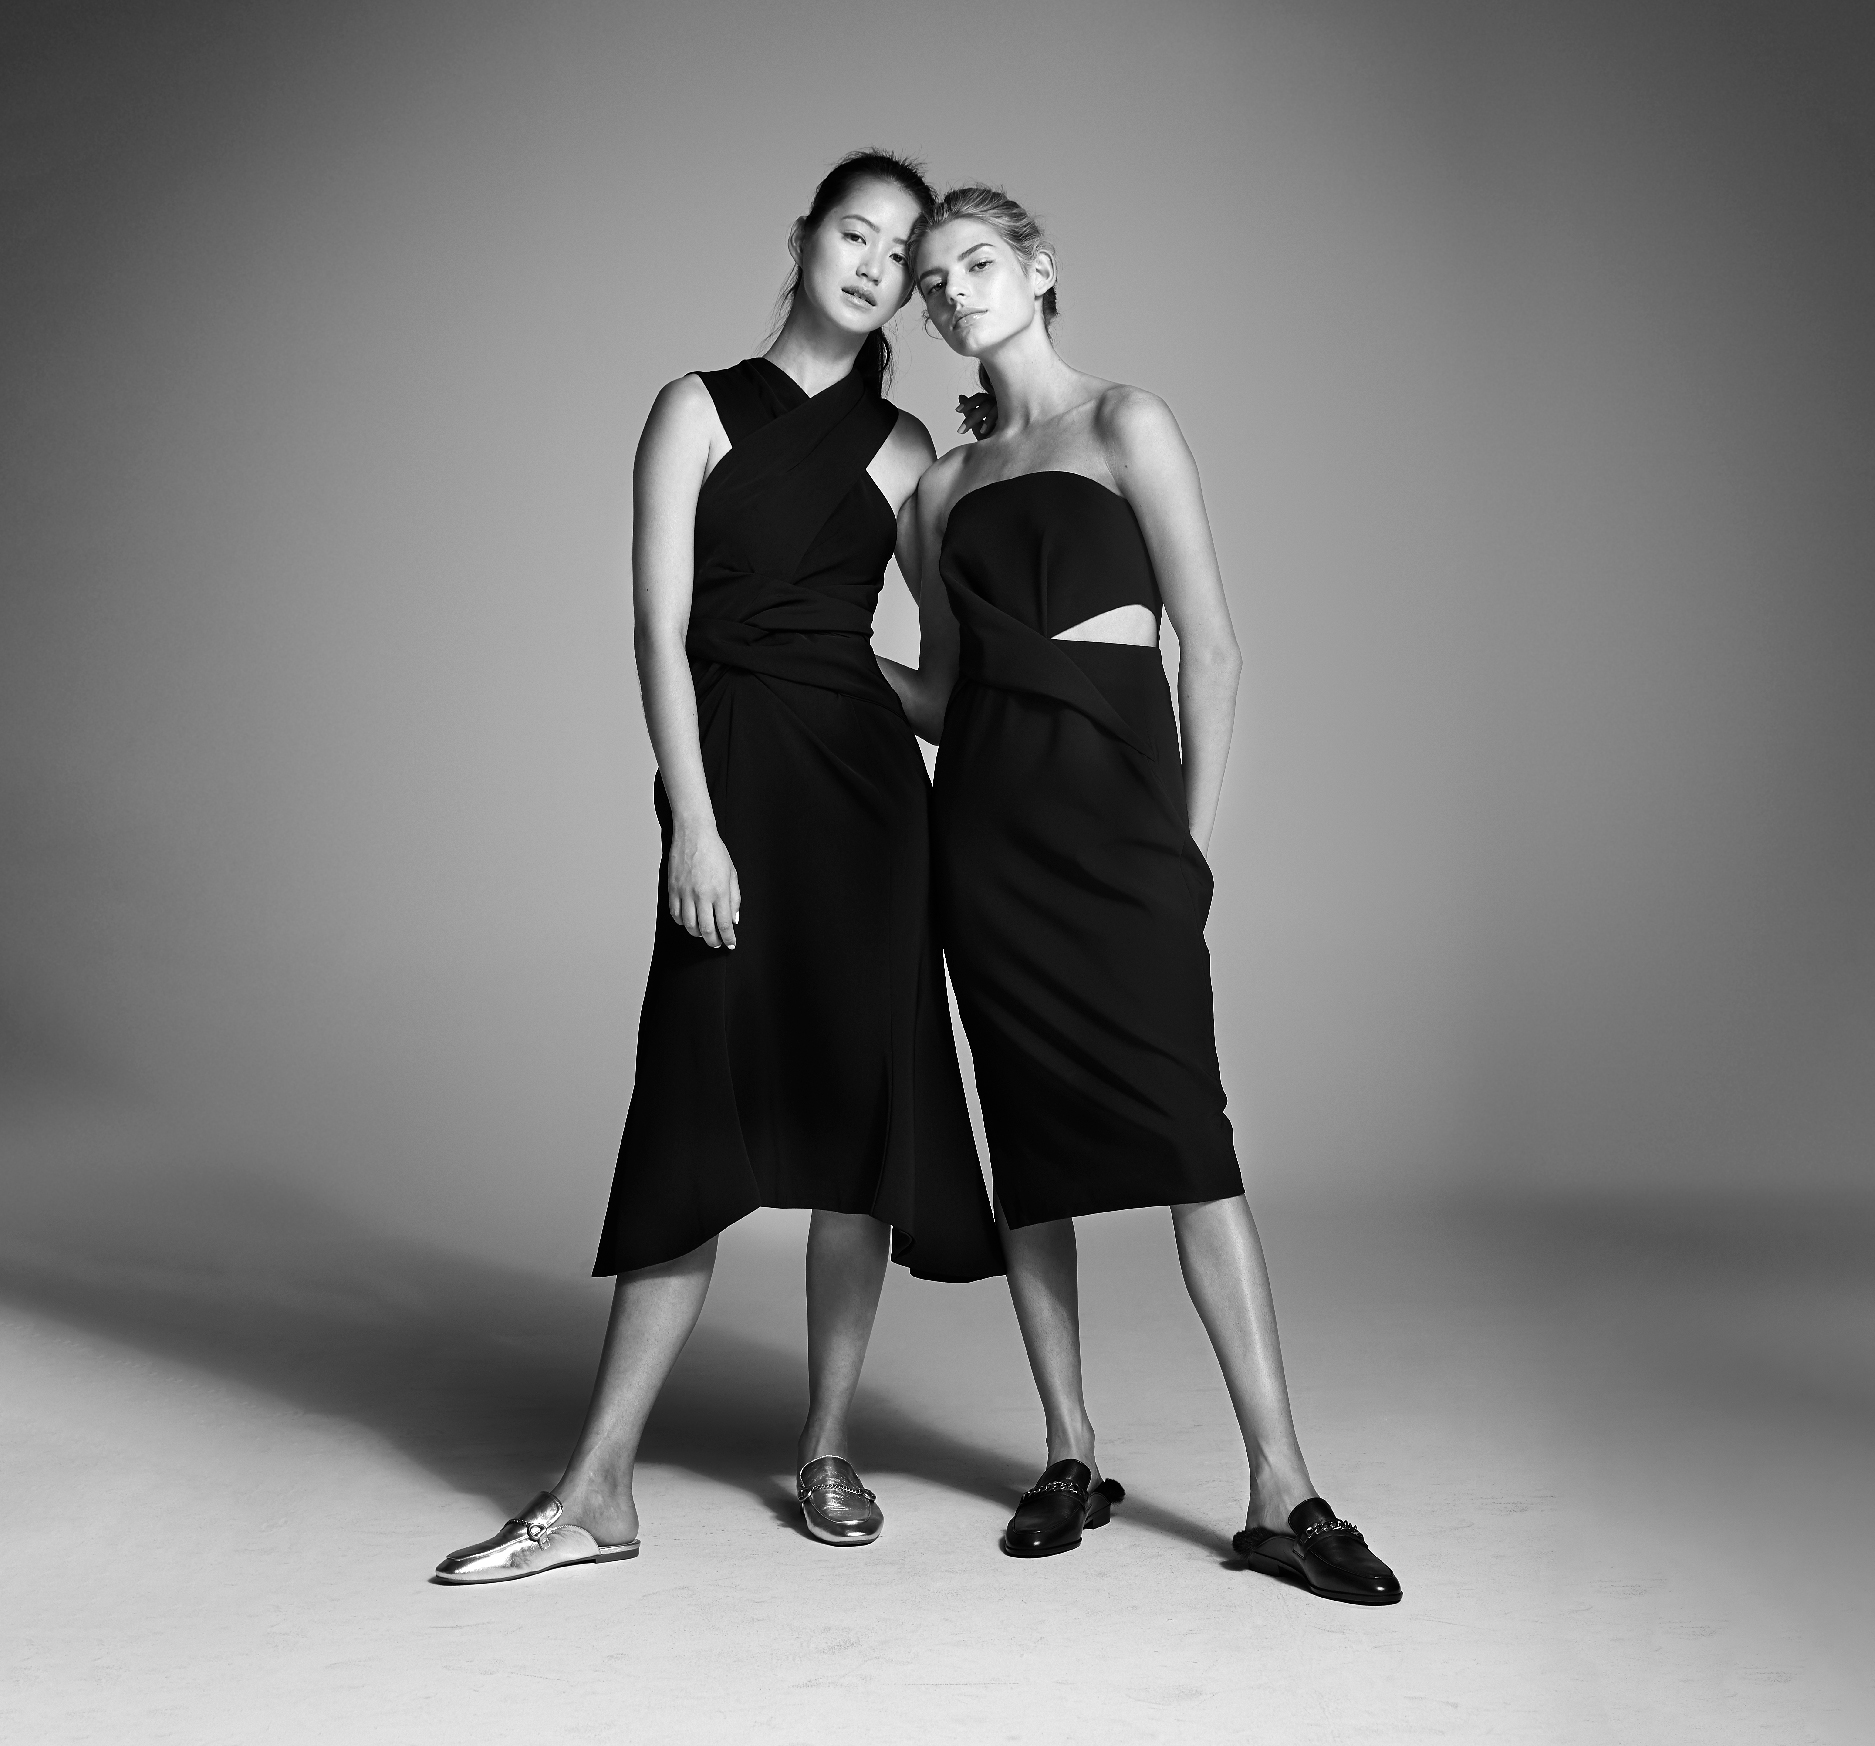 Wittner Brand Advertising still of 2 model girls standing wearing black